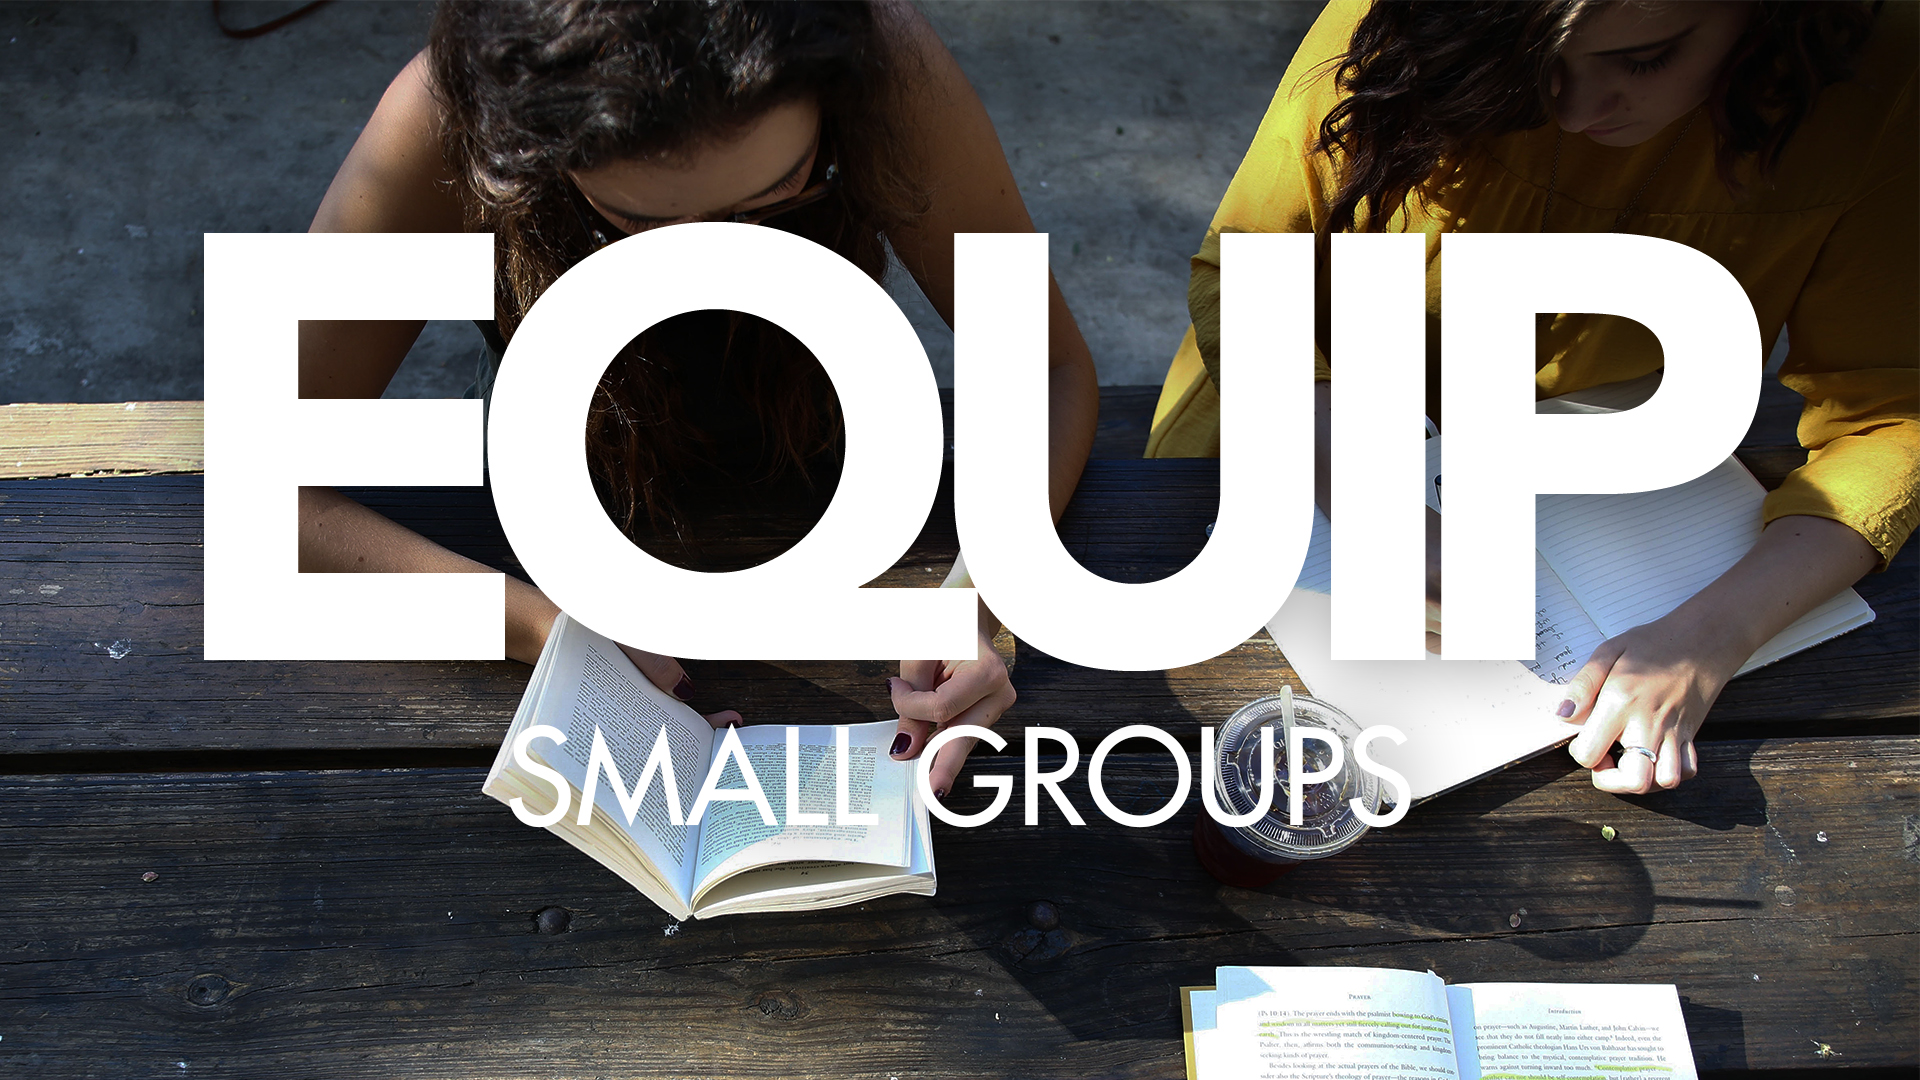 Equip small groups